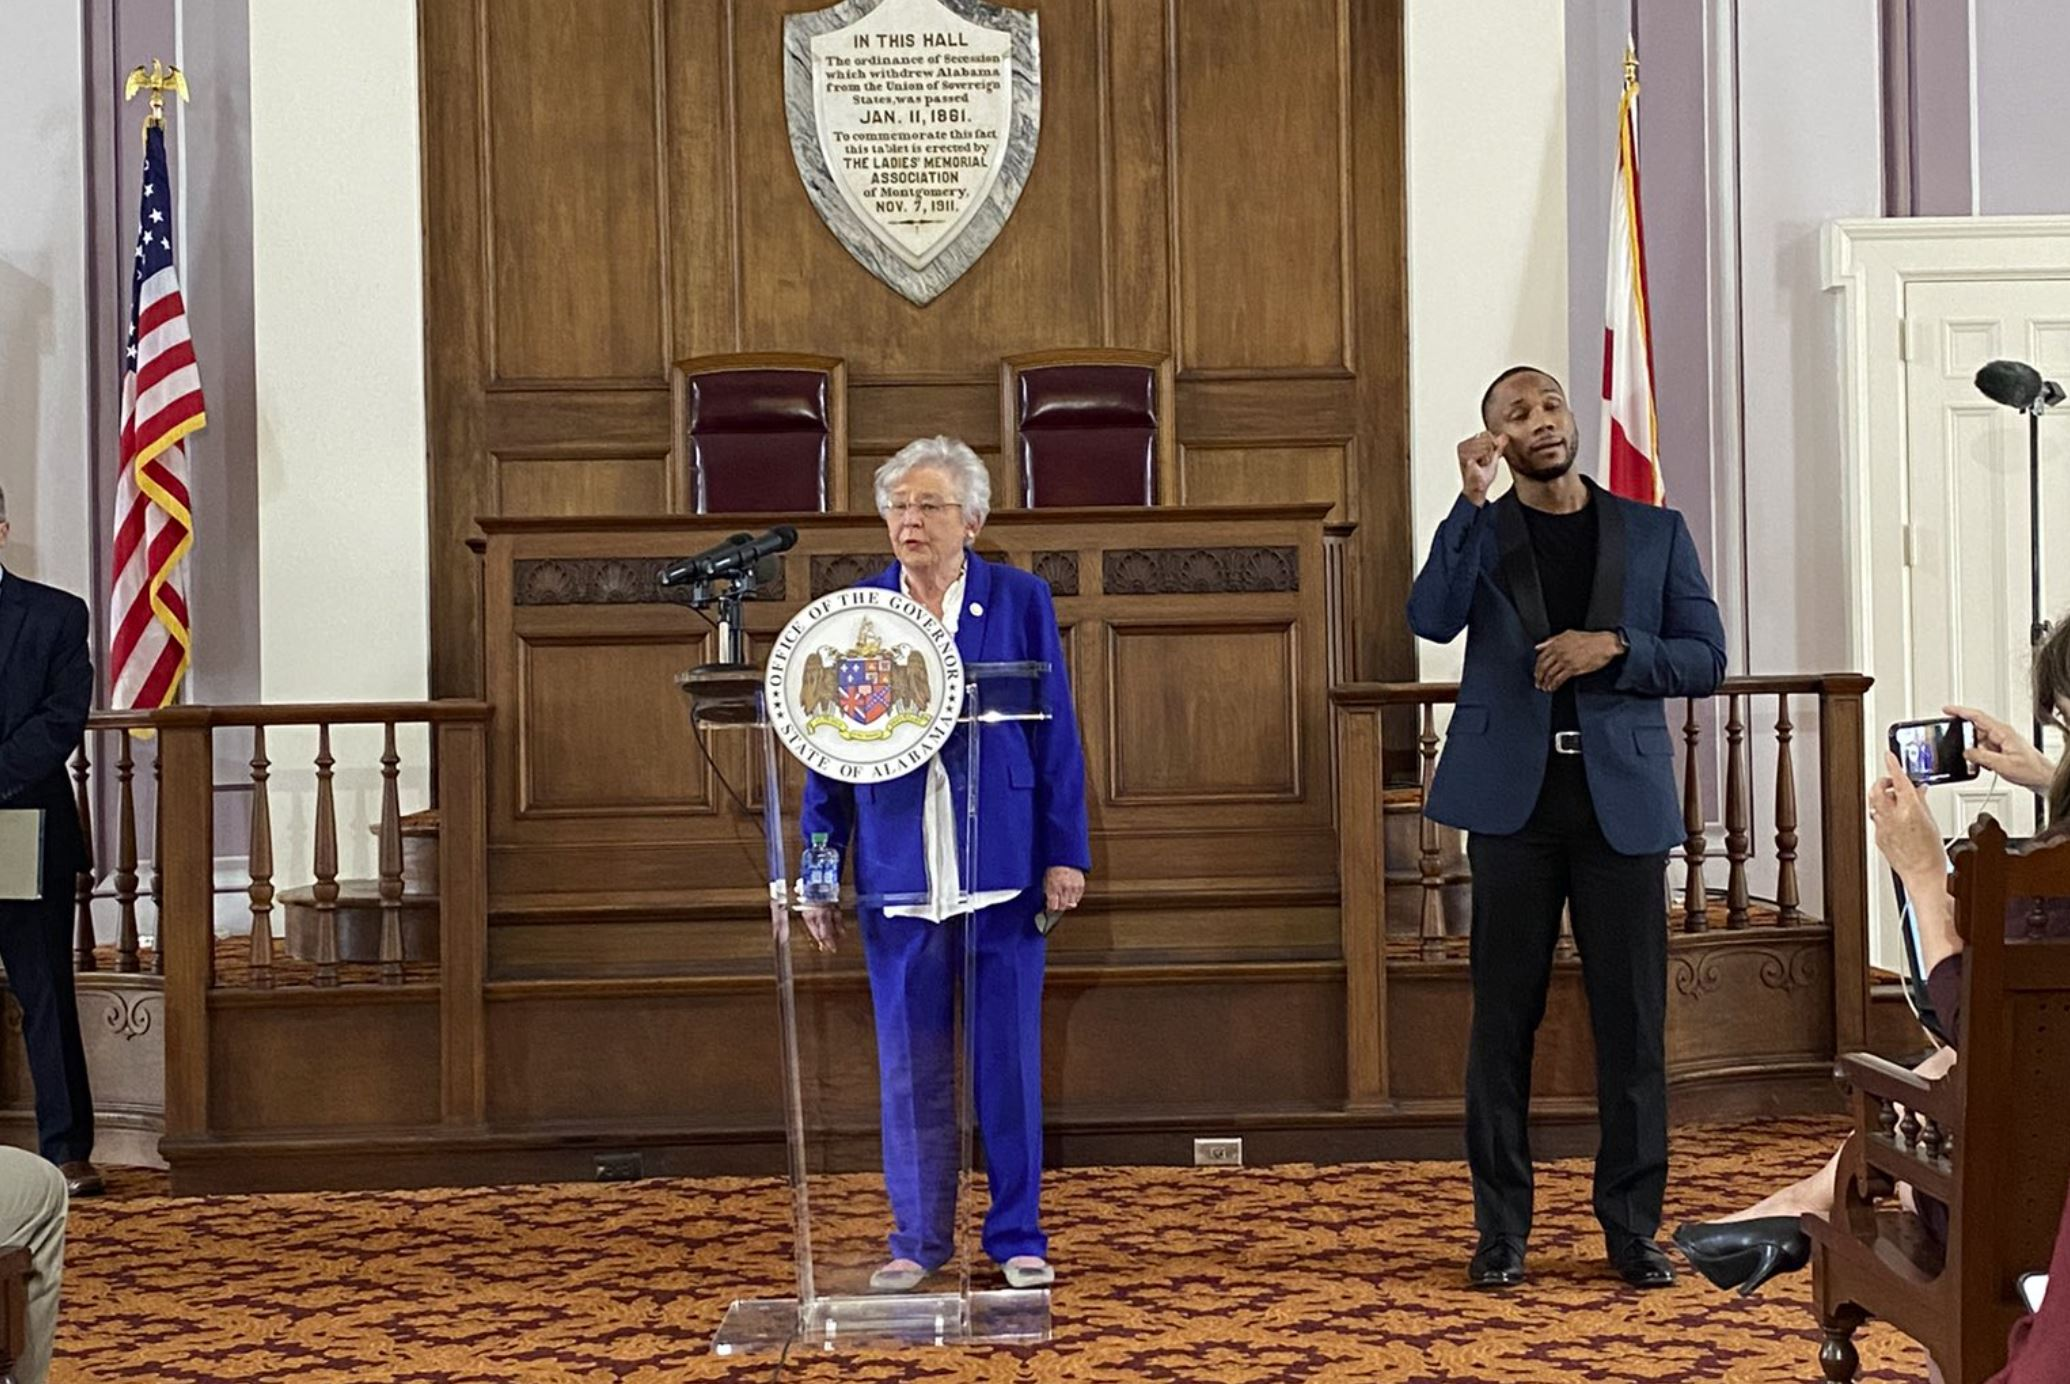 New Safer Apart Order issued by Gov. Kay Ivey